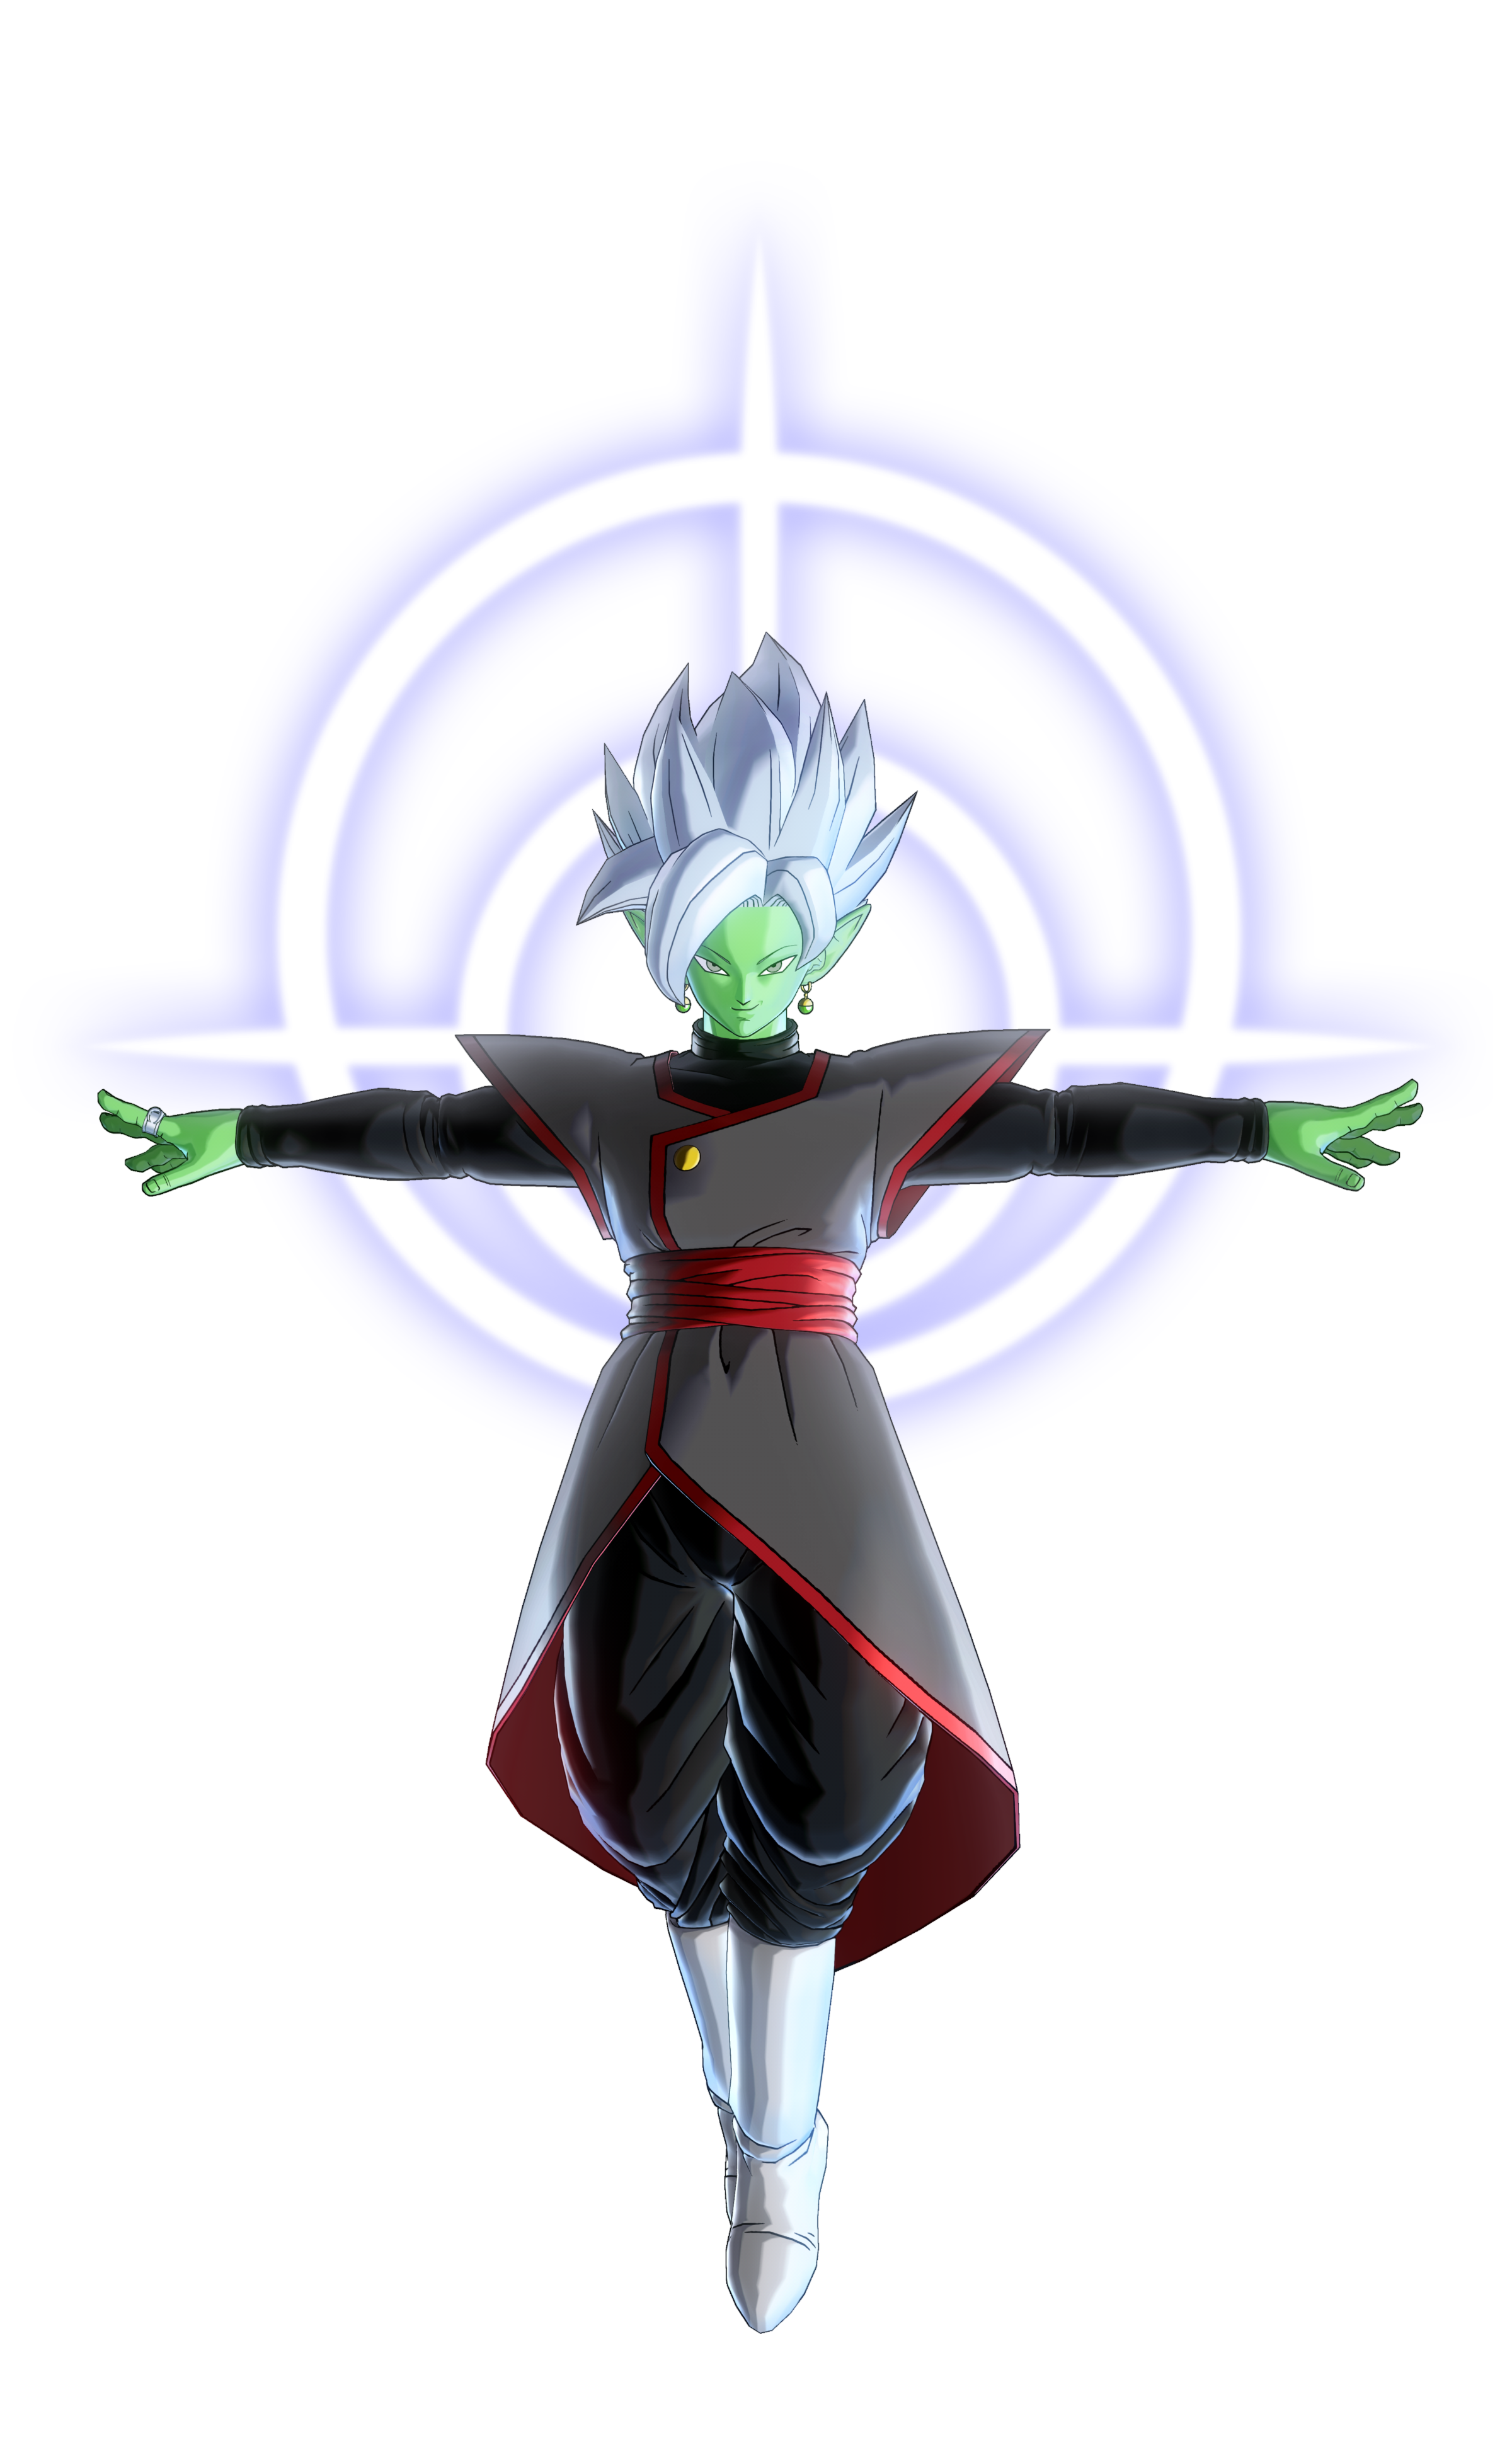 Fused Zamasu with Barrier of Light Render (Dragon Ball Xenoverse 2).png